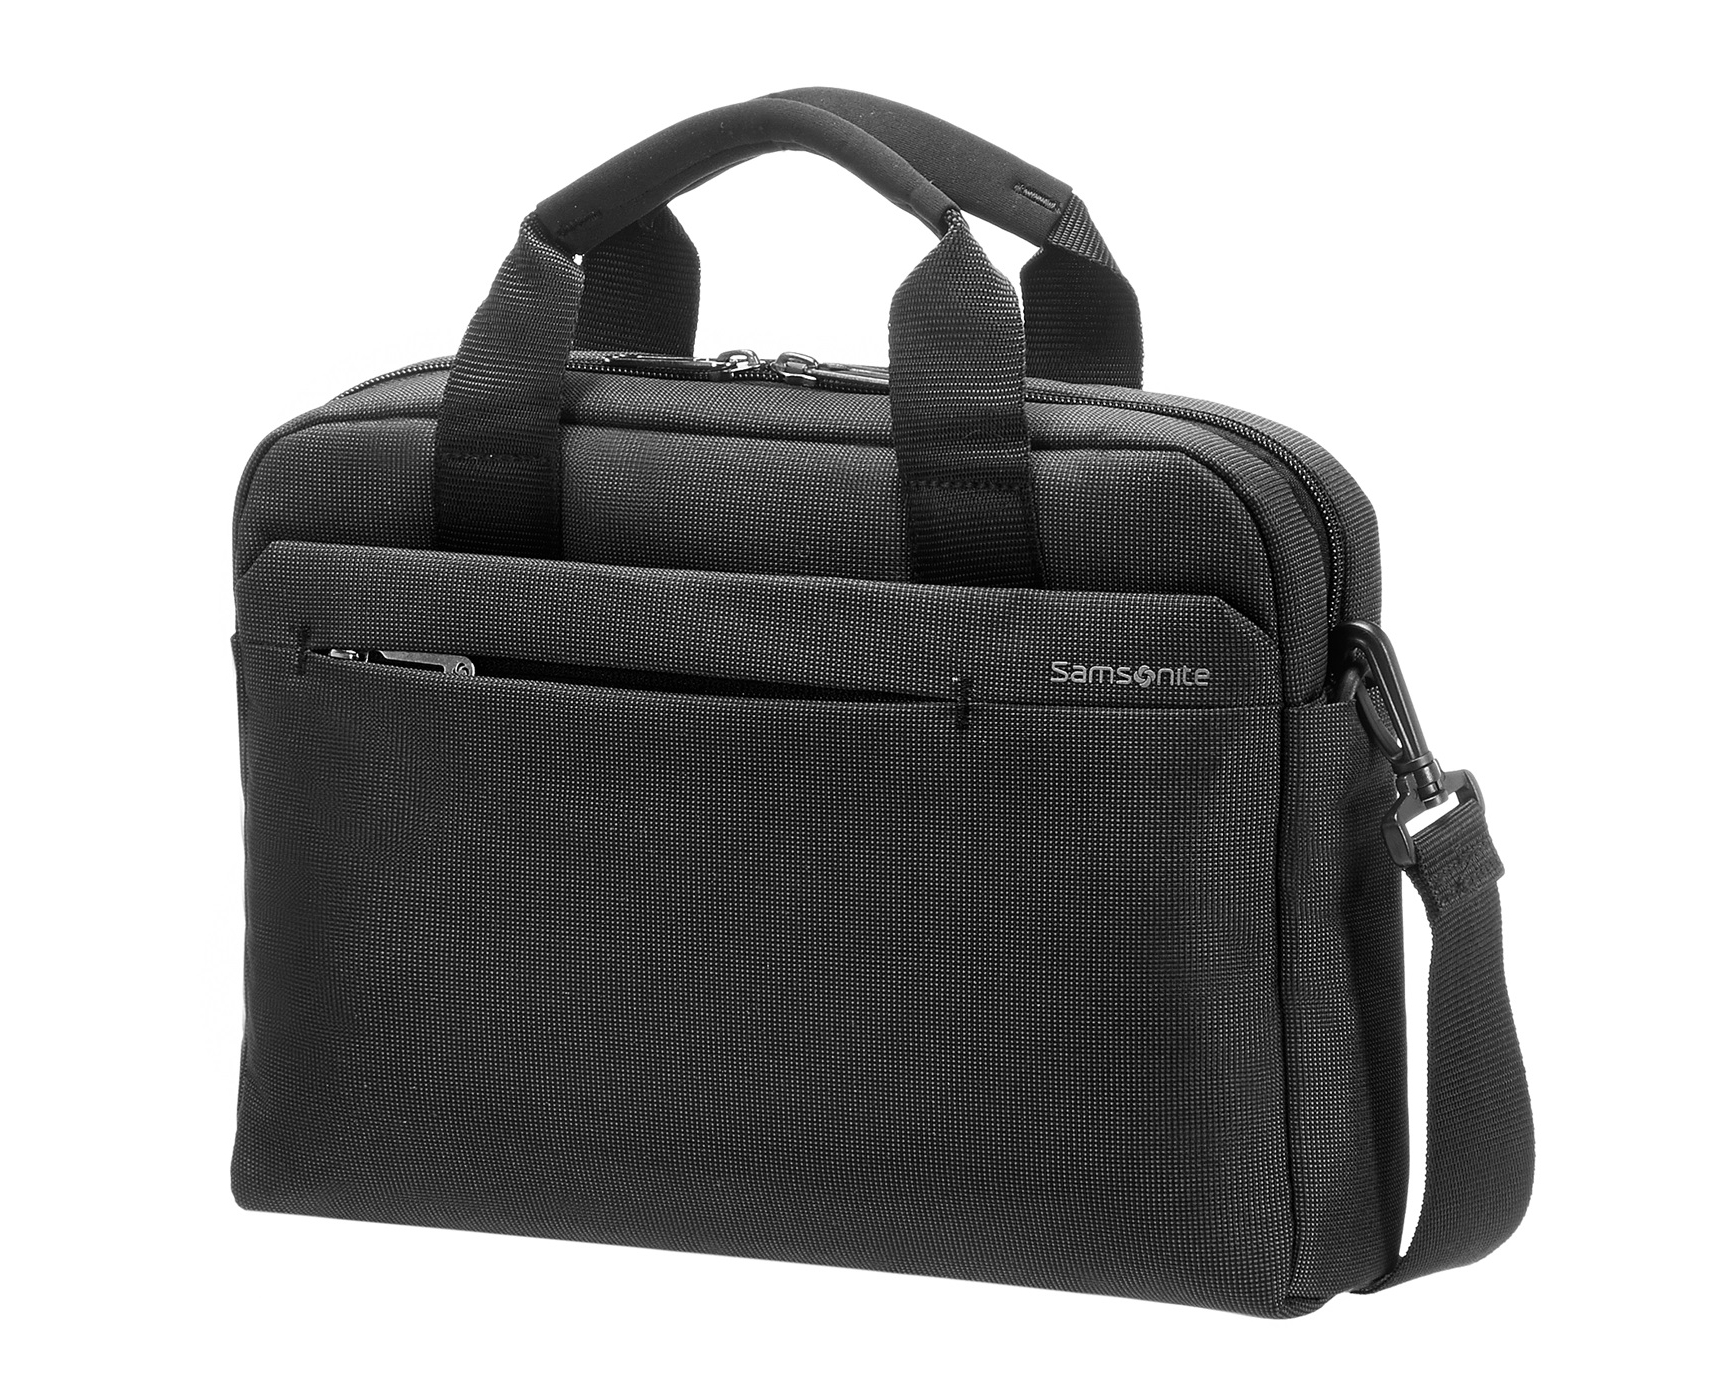 SAMSONITE - BORSE NOTEBOOK - 5414847367618